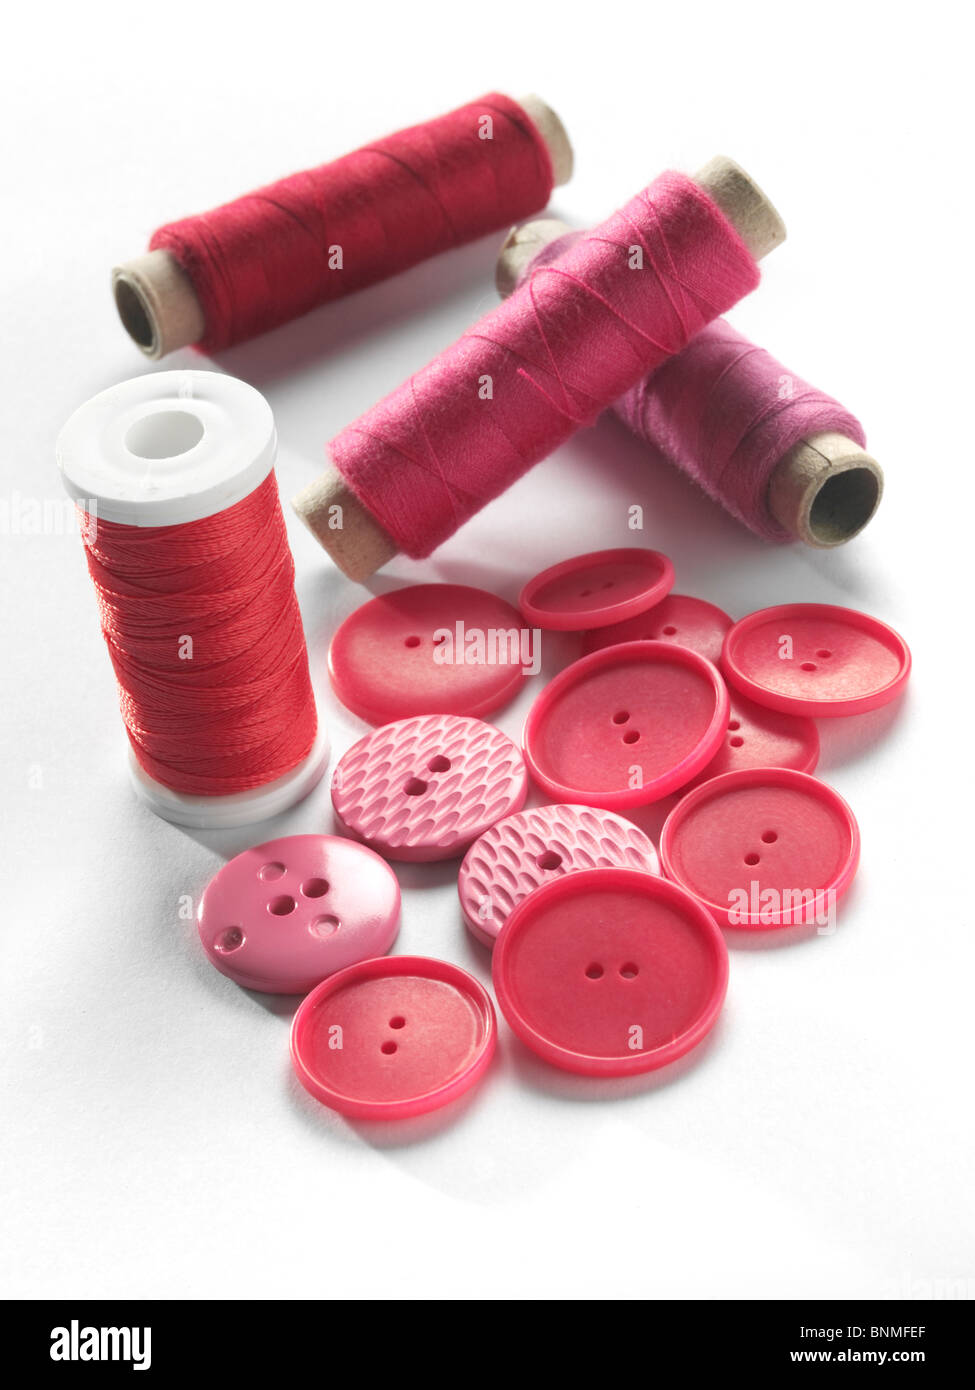 red,buttons,thread,sewing - Stock Image